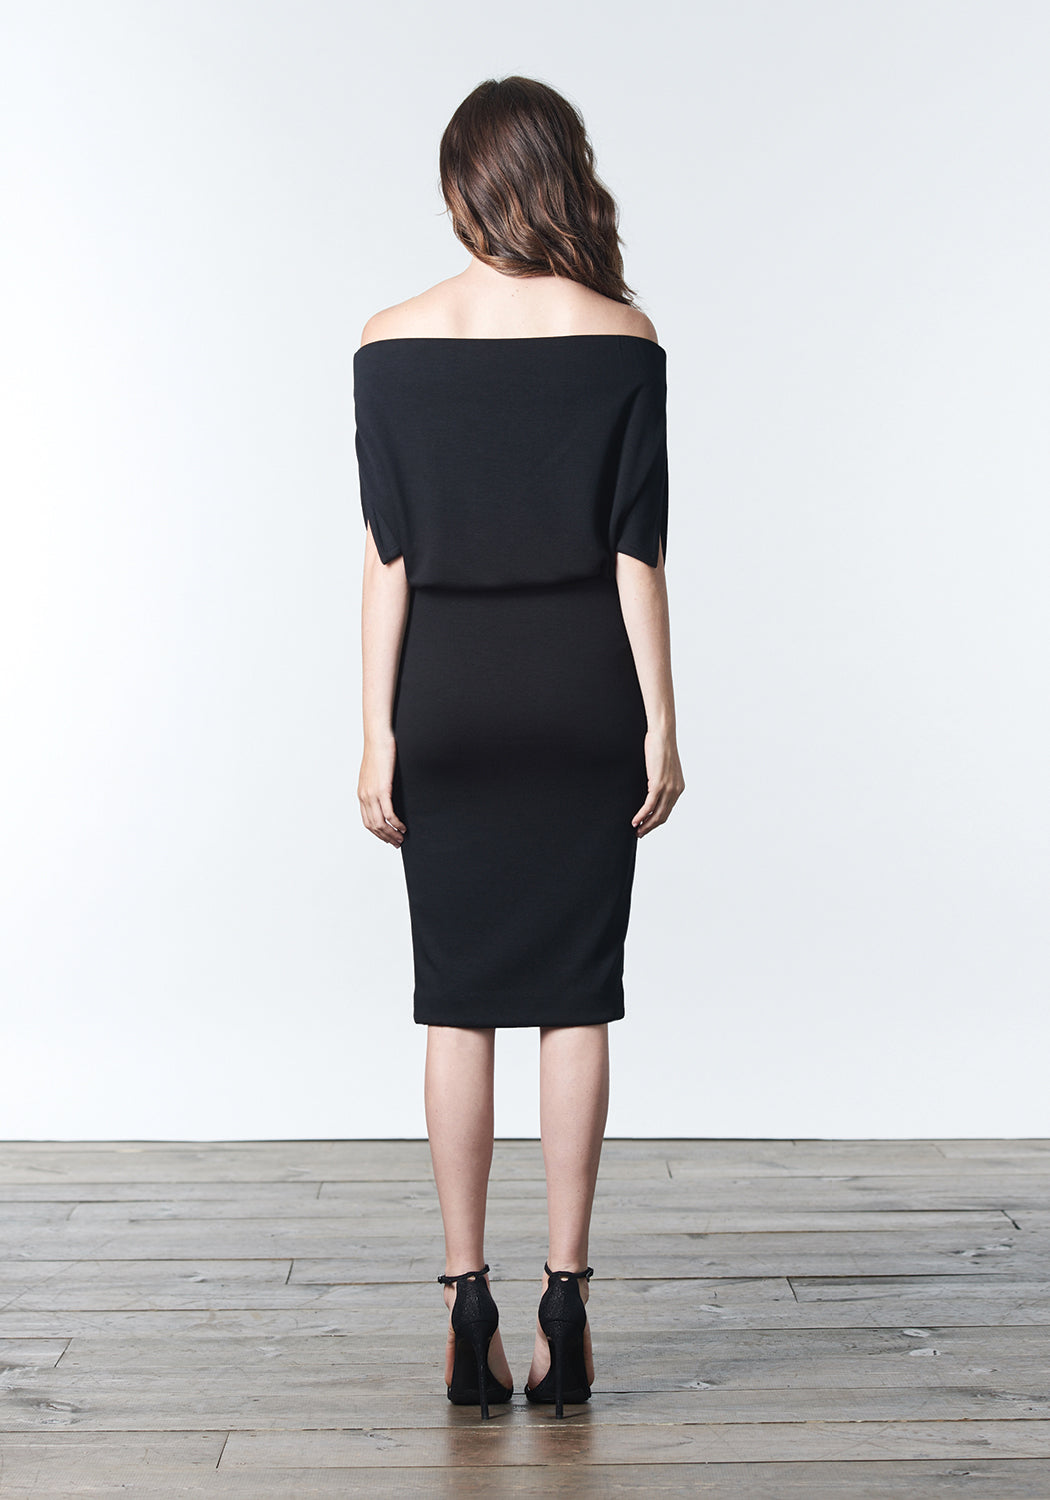 "Fall, Autumn, Winter cocktail or work knit ""little black dress"". Made of stretch tencel."